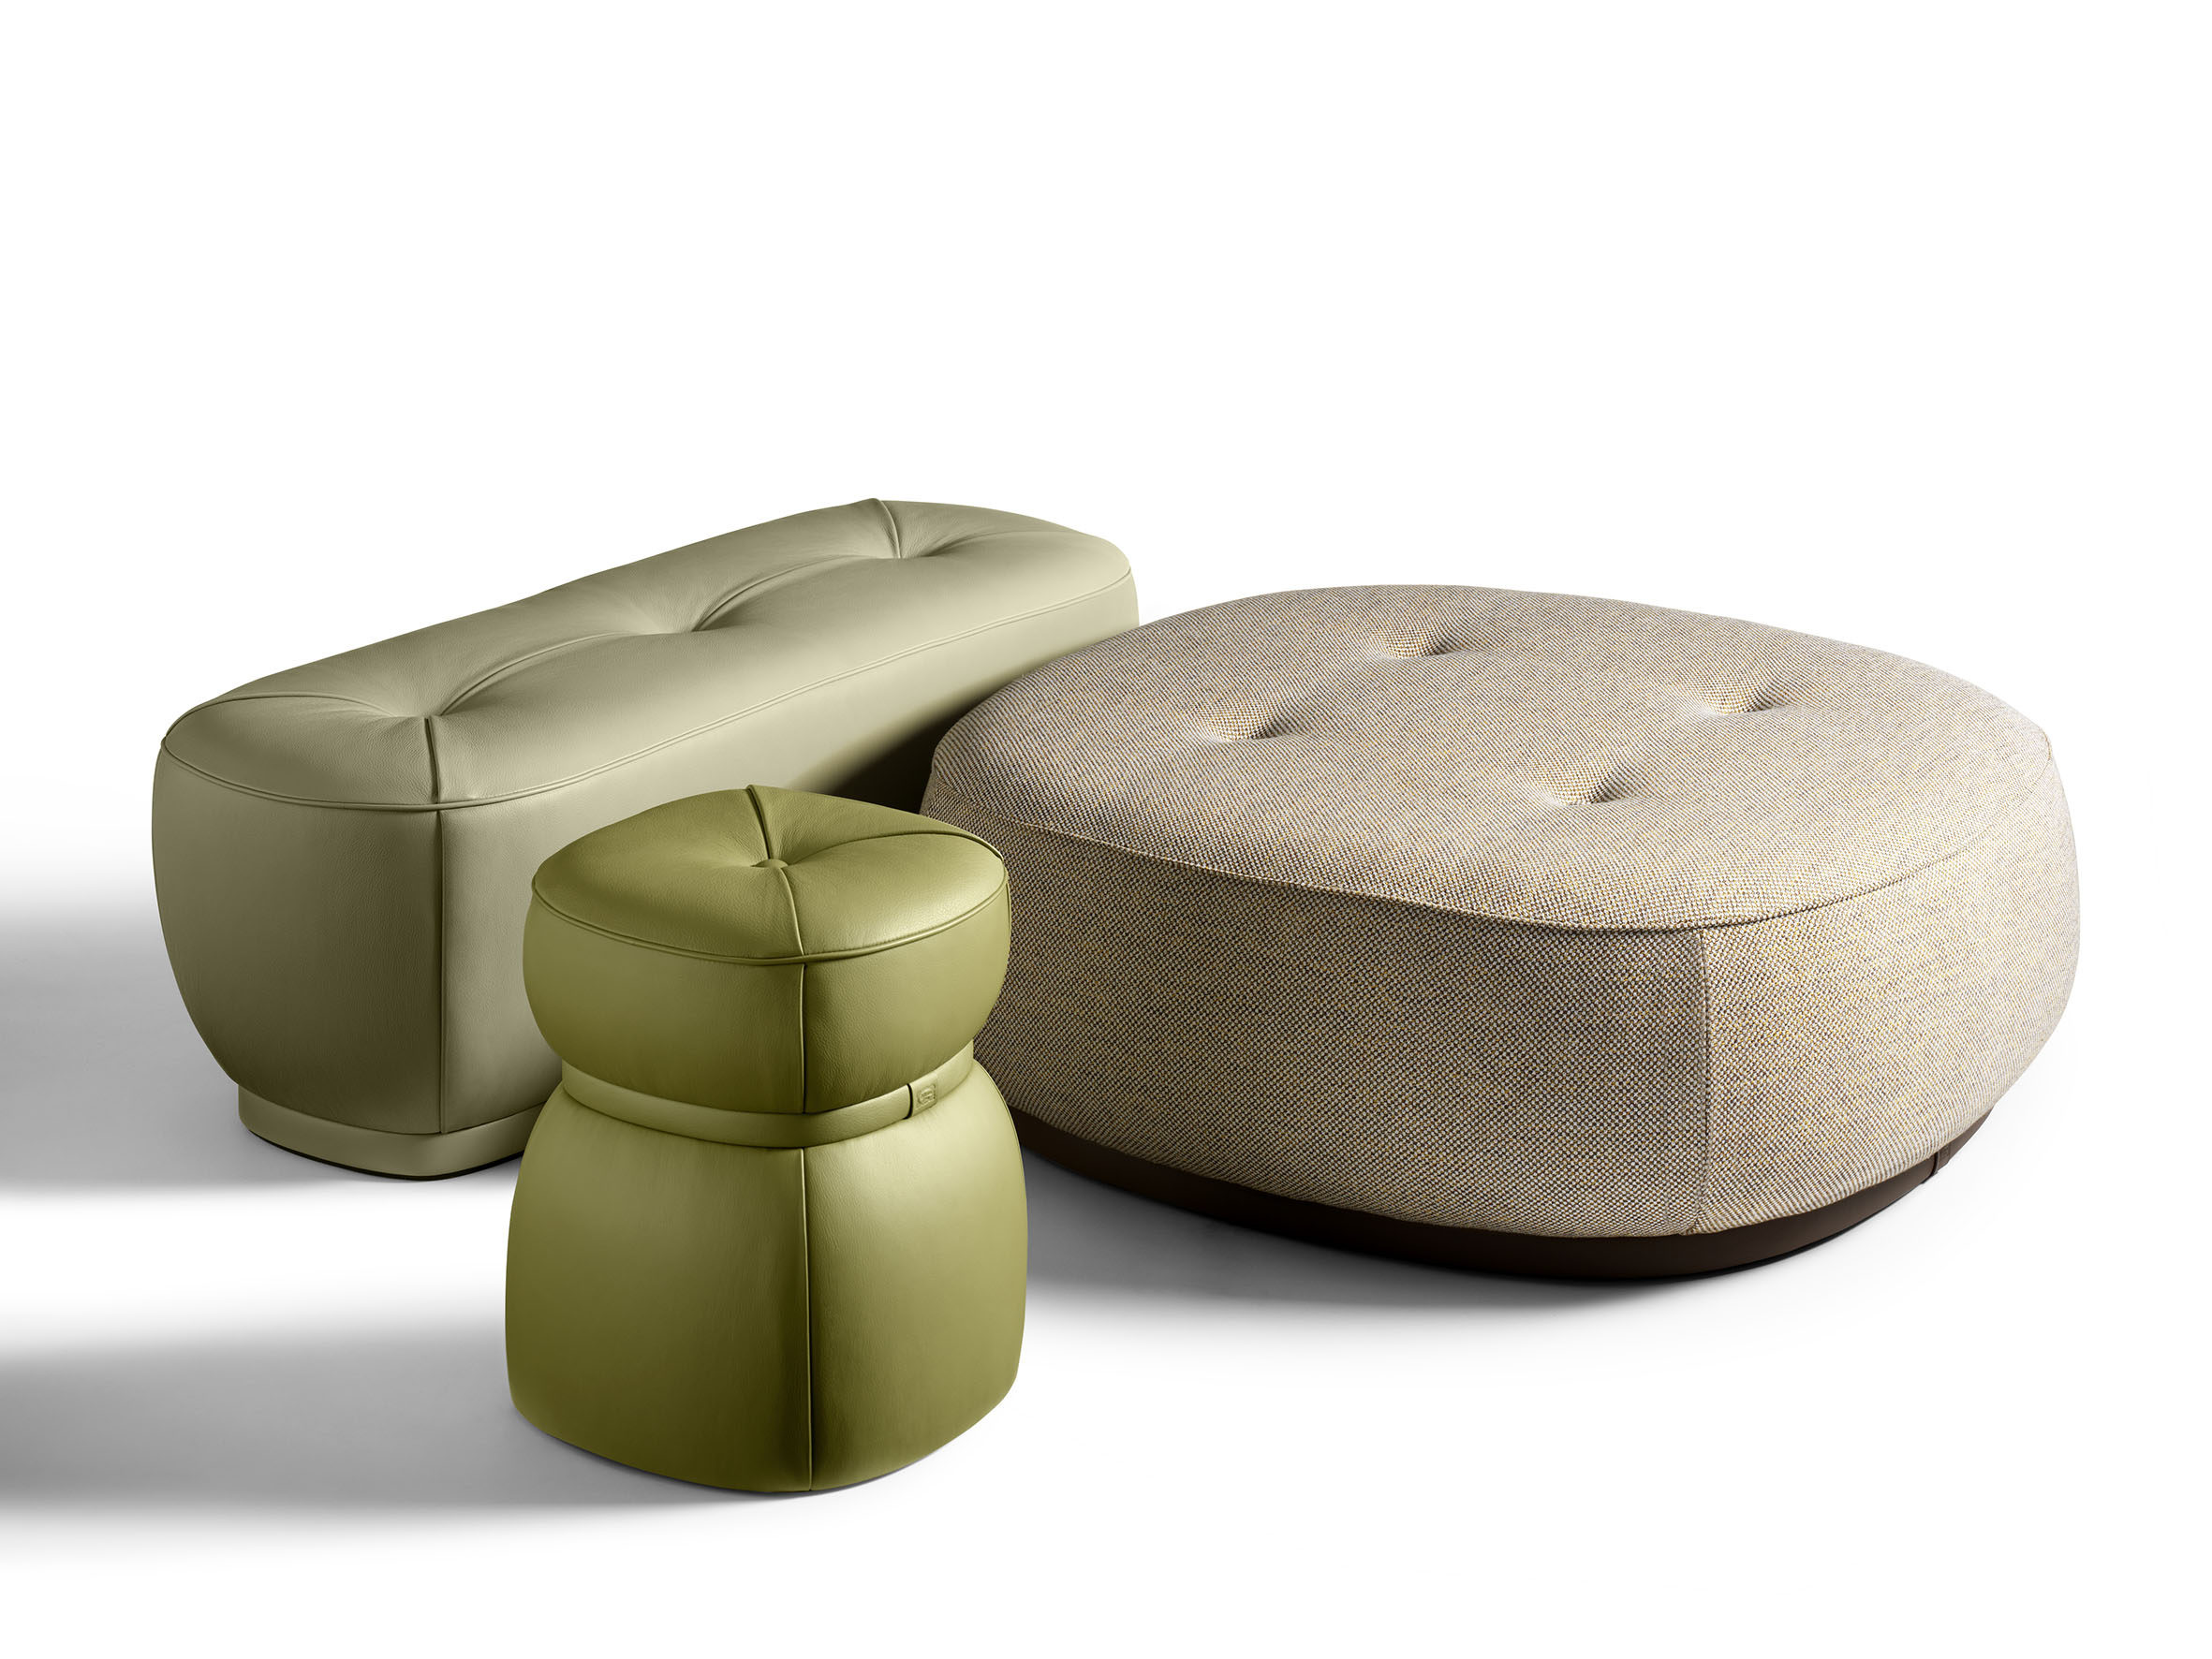 Lepli Fabric Pouf The Collection Sofa And Armchairs - Poltrona Design Patchwork